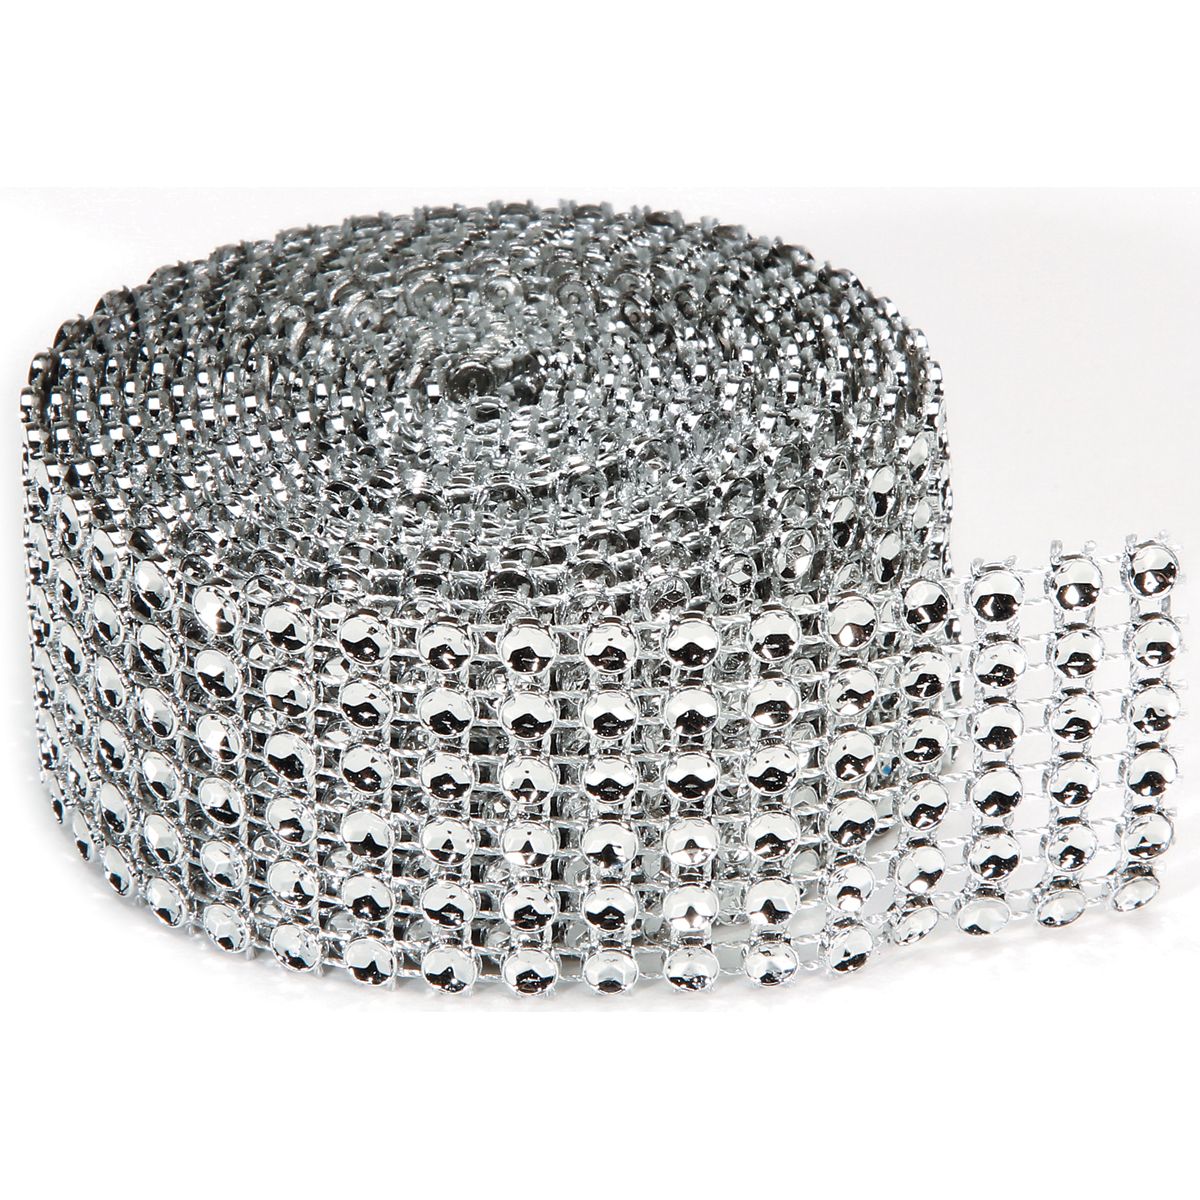 Darice Bling On A Roll, 4mm x 2 yds, 6 Row, Silver